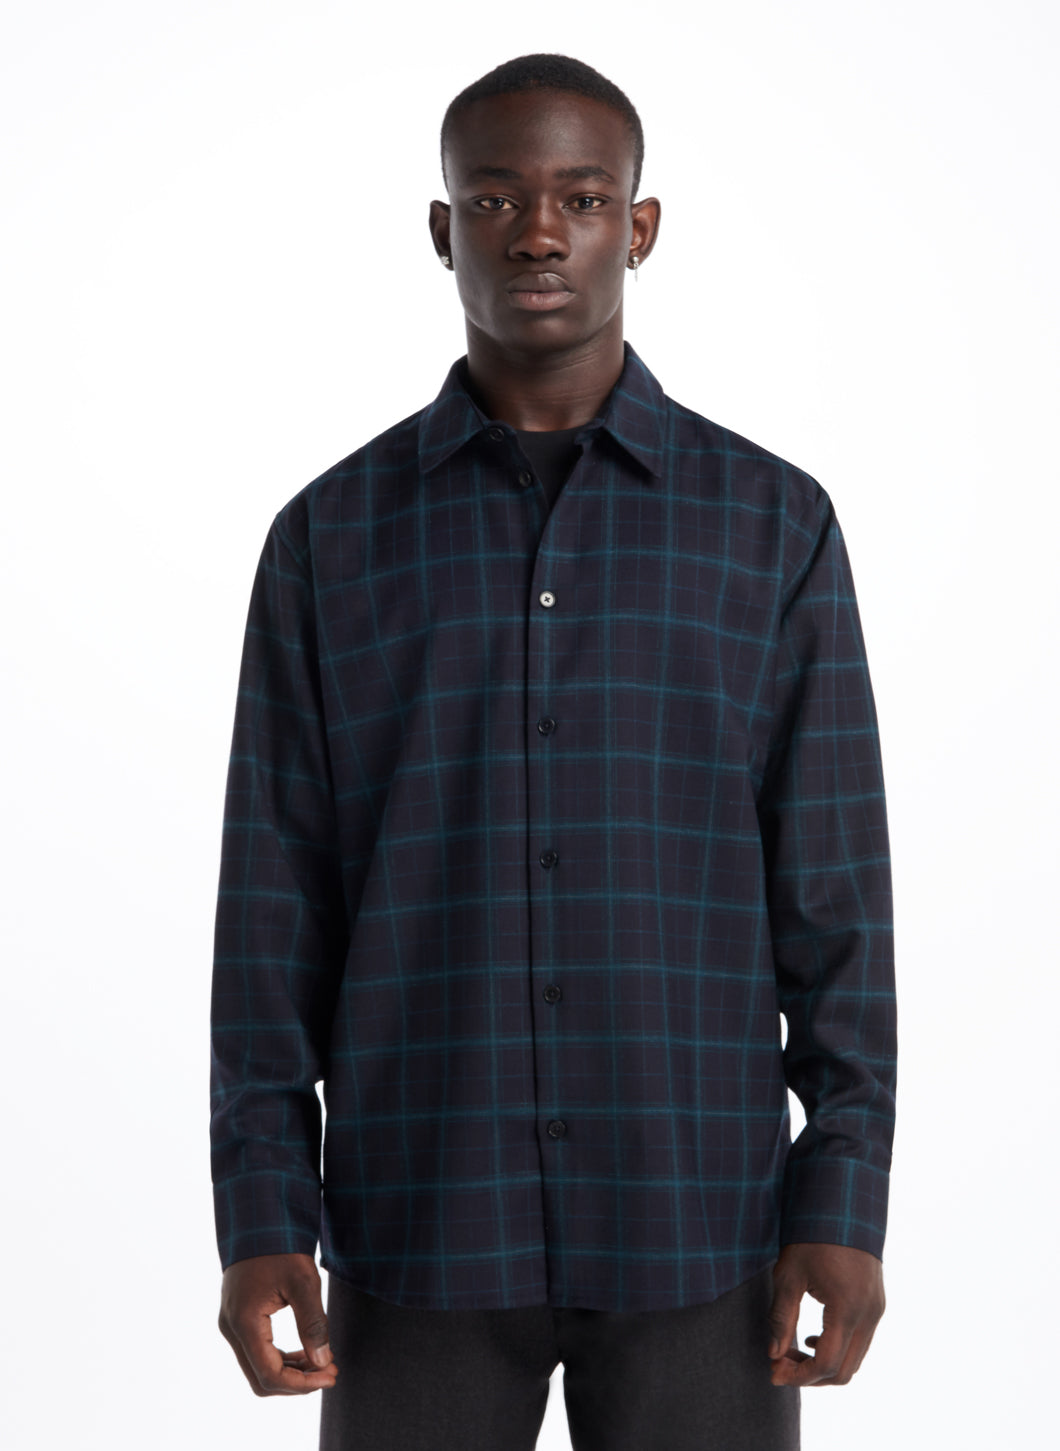 Overshirt with Classic Collar in Navy Blue Flannel Wool with Green Checks